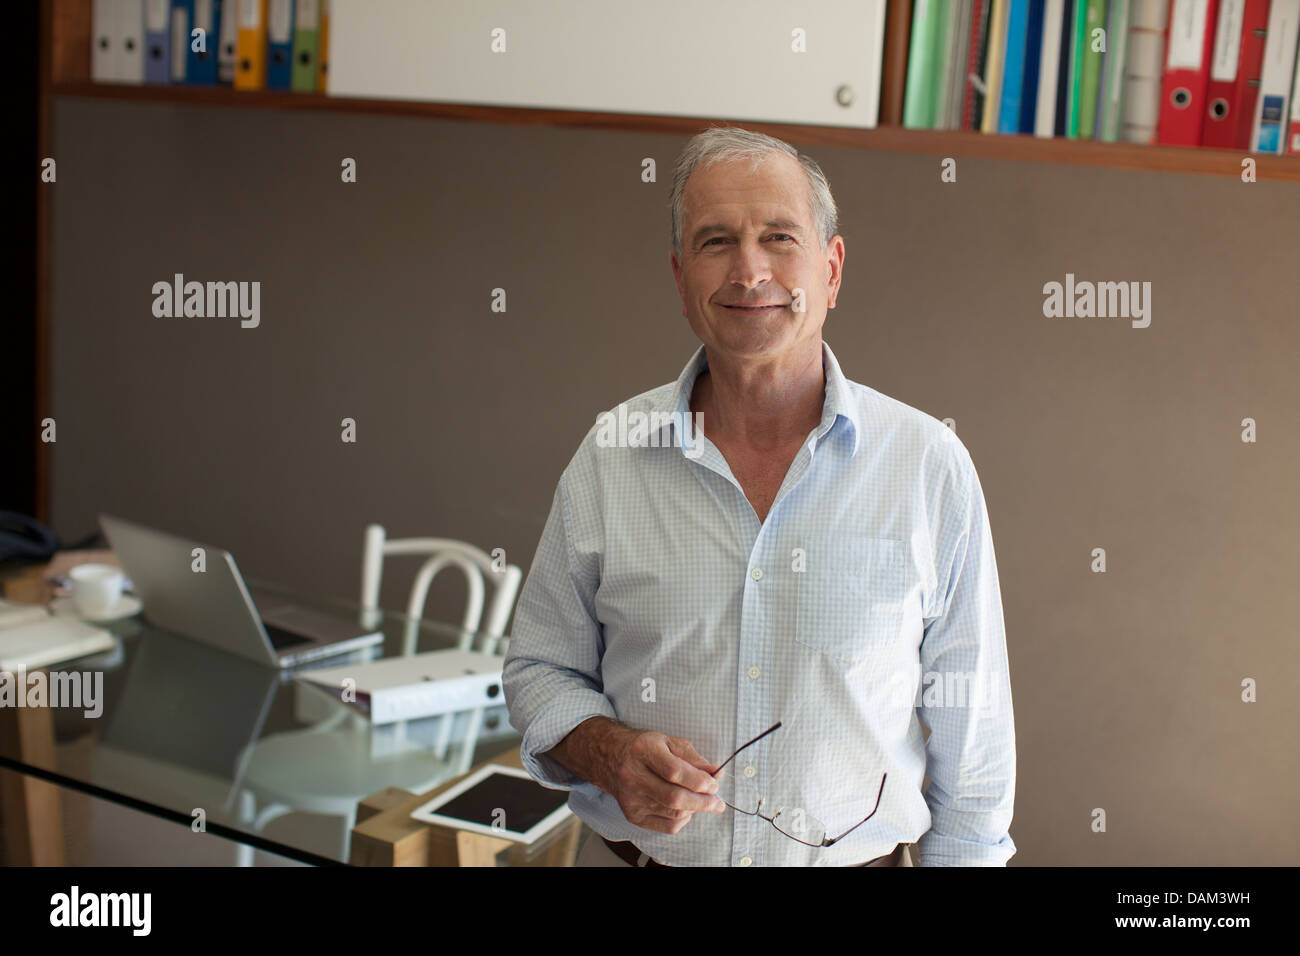 Older Man smiling in office Photo Stock